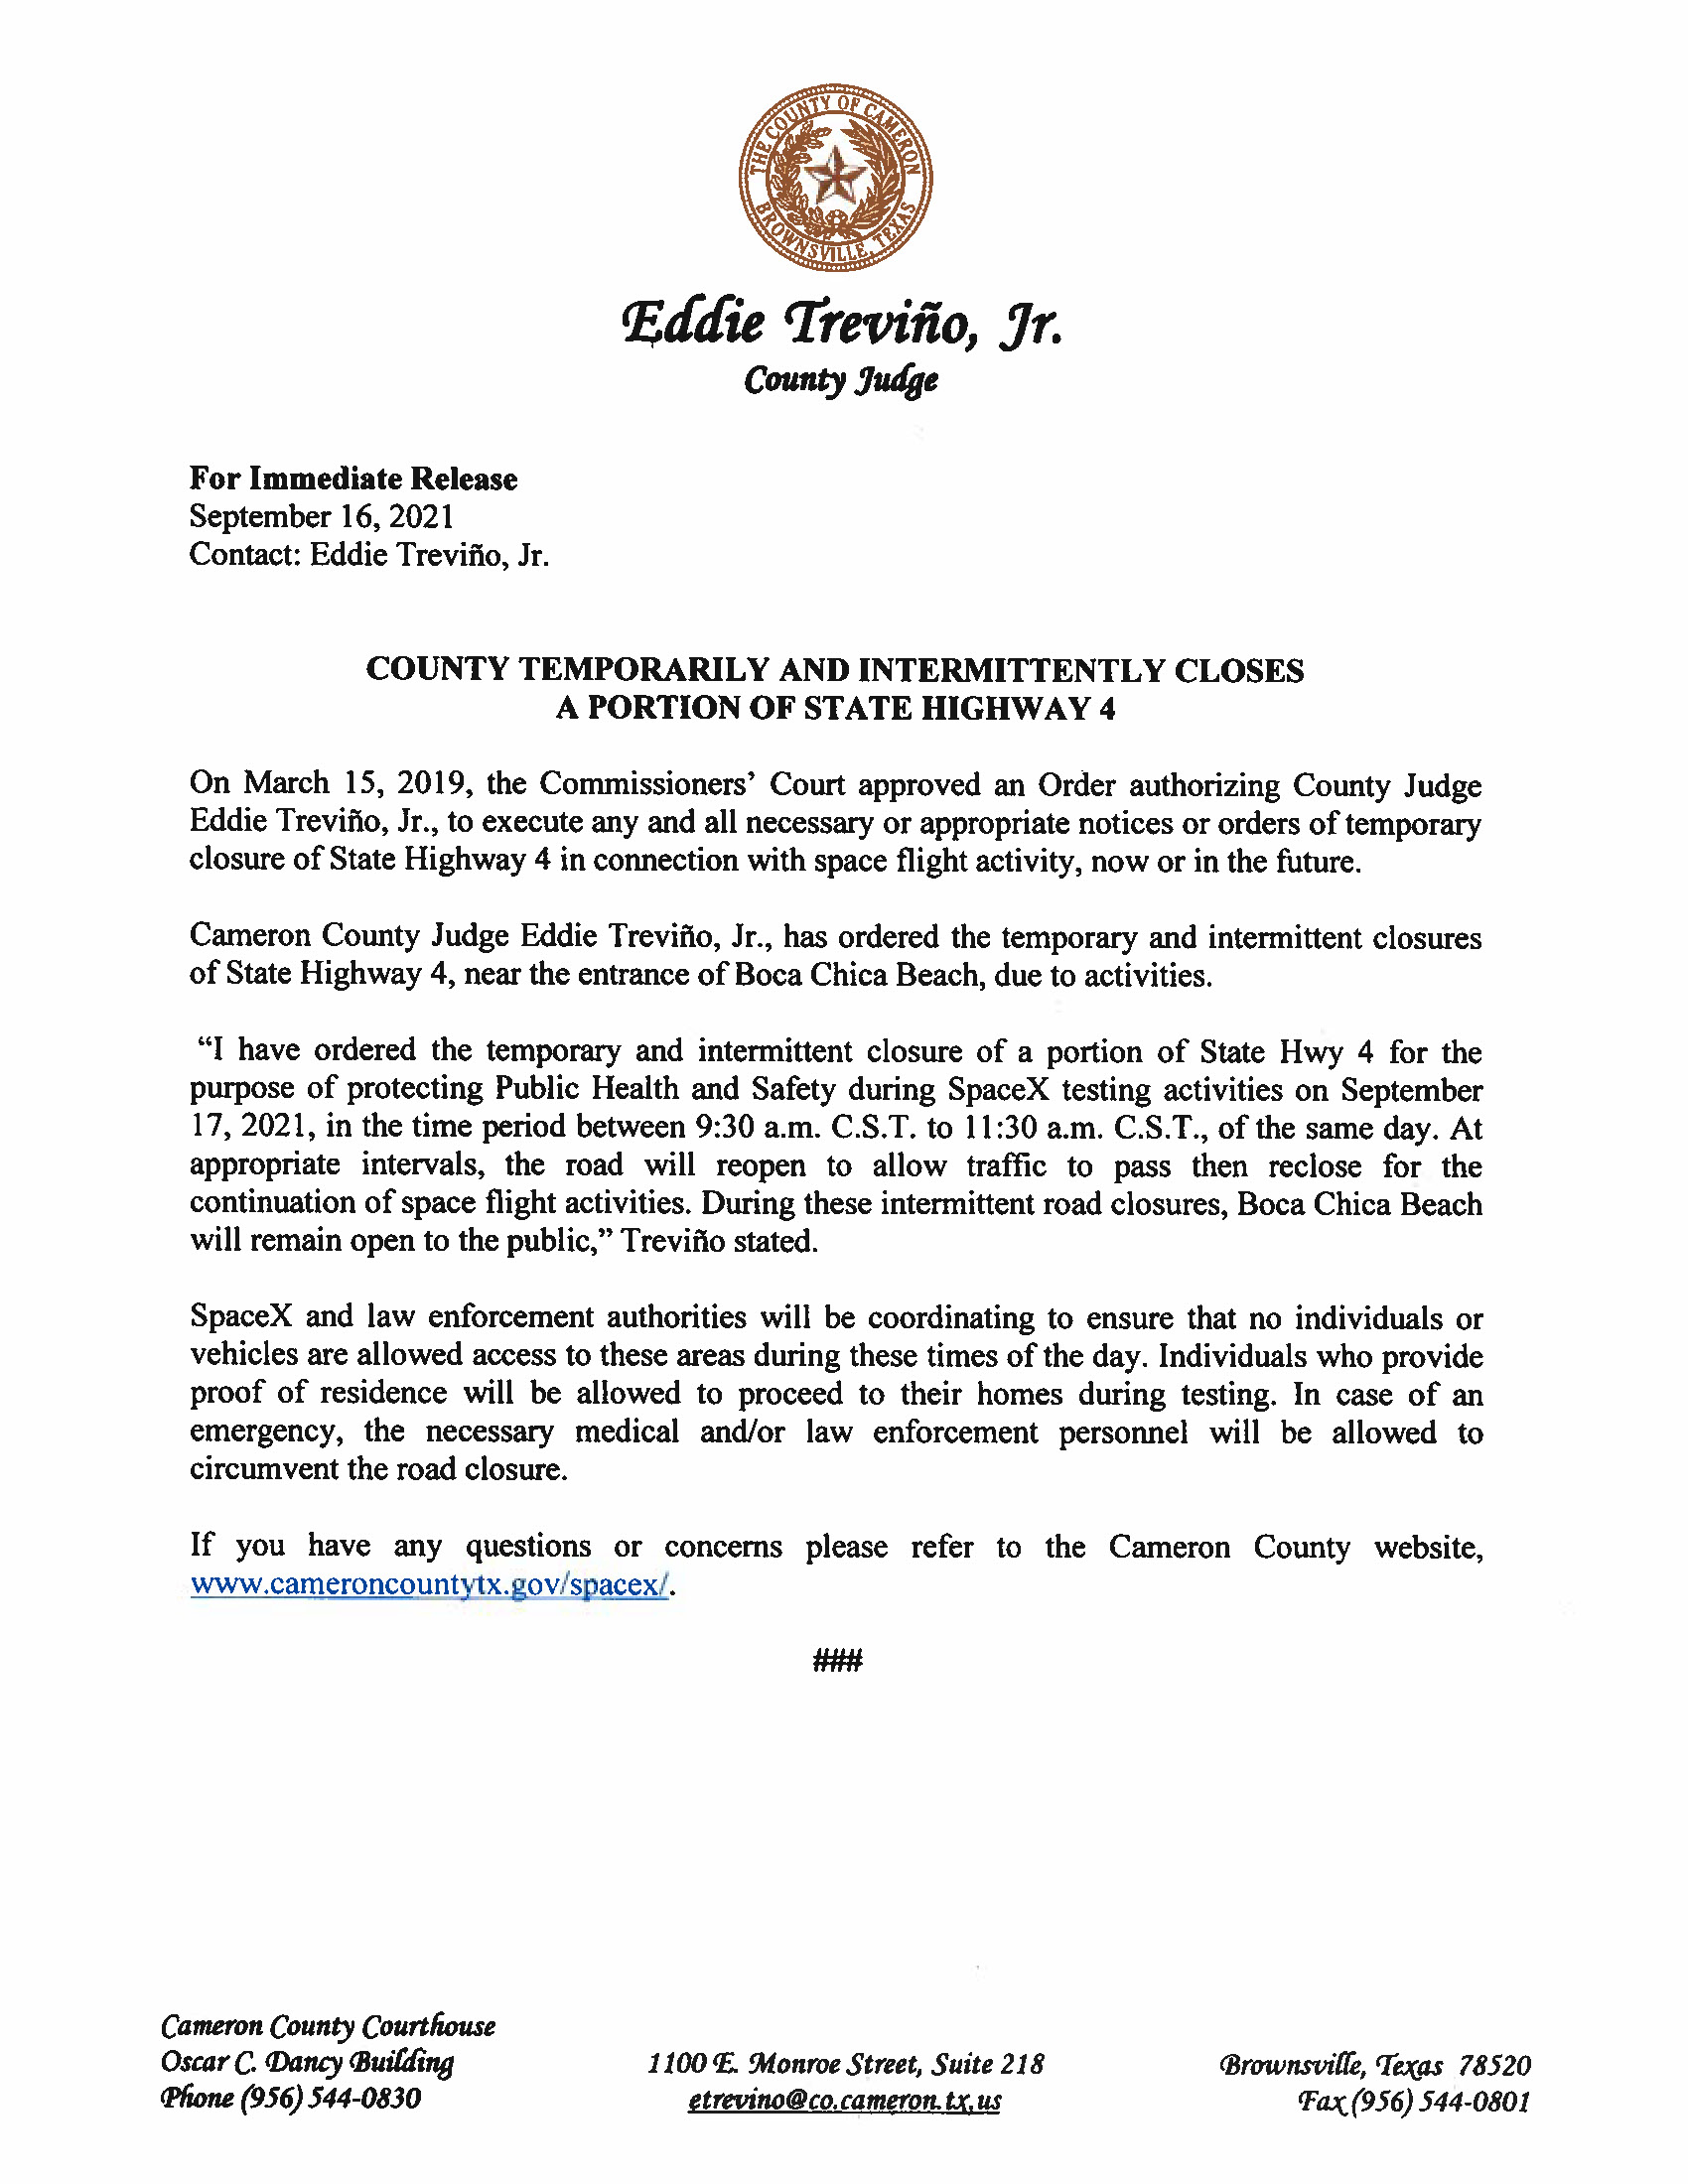 Press Release In English And Spanish.09.17.2021 Page 1 1